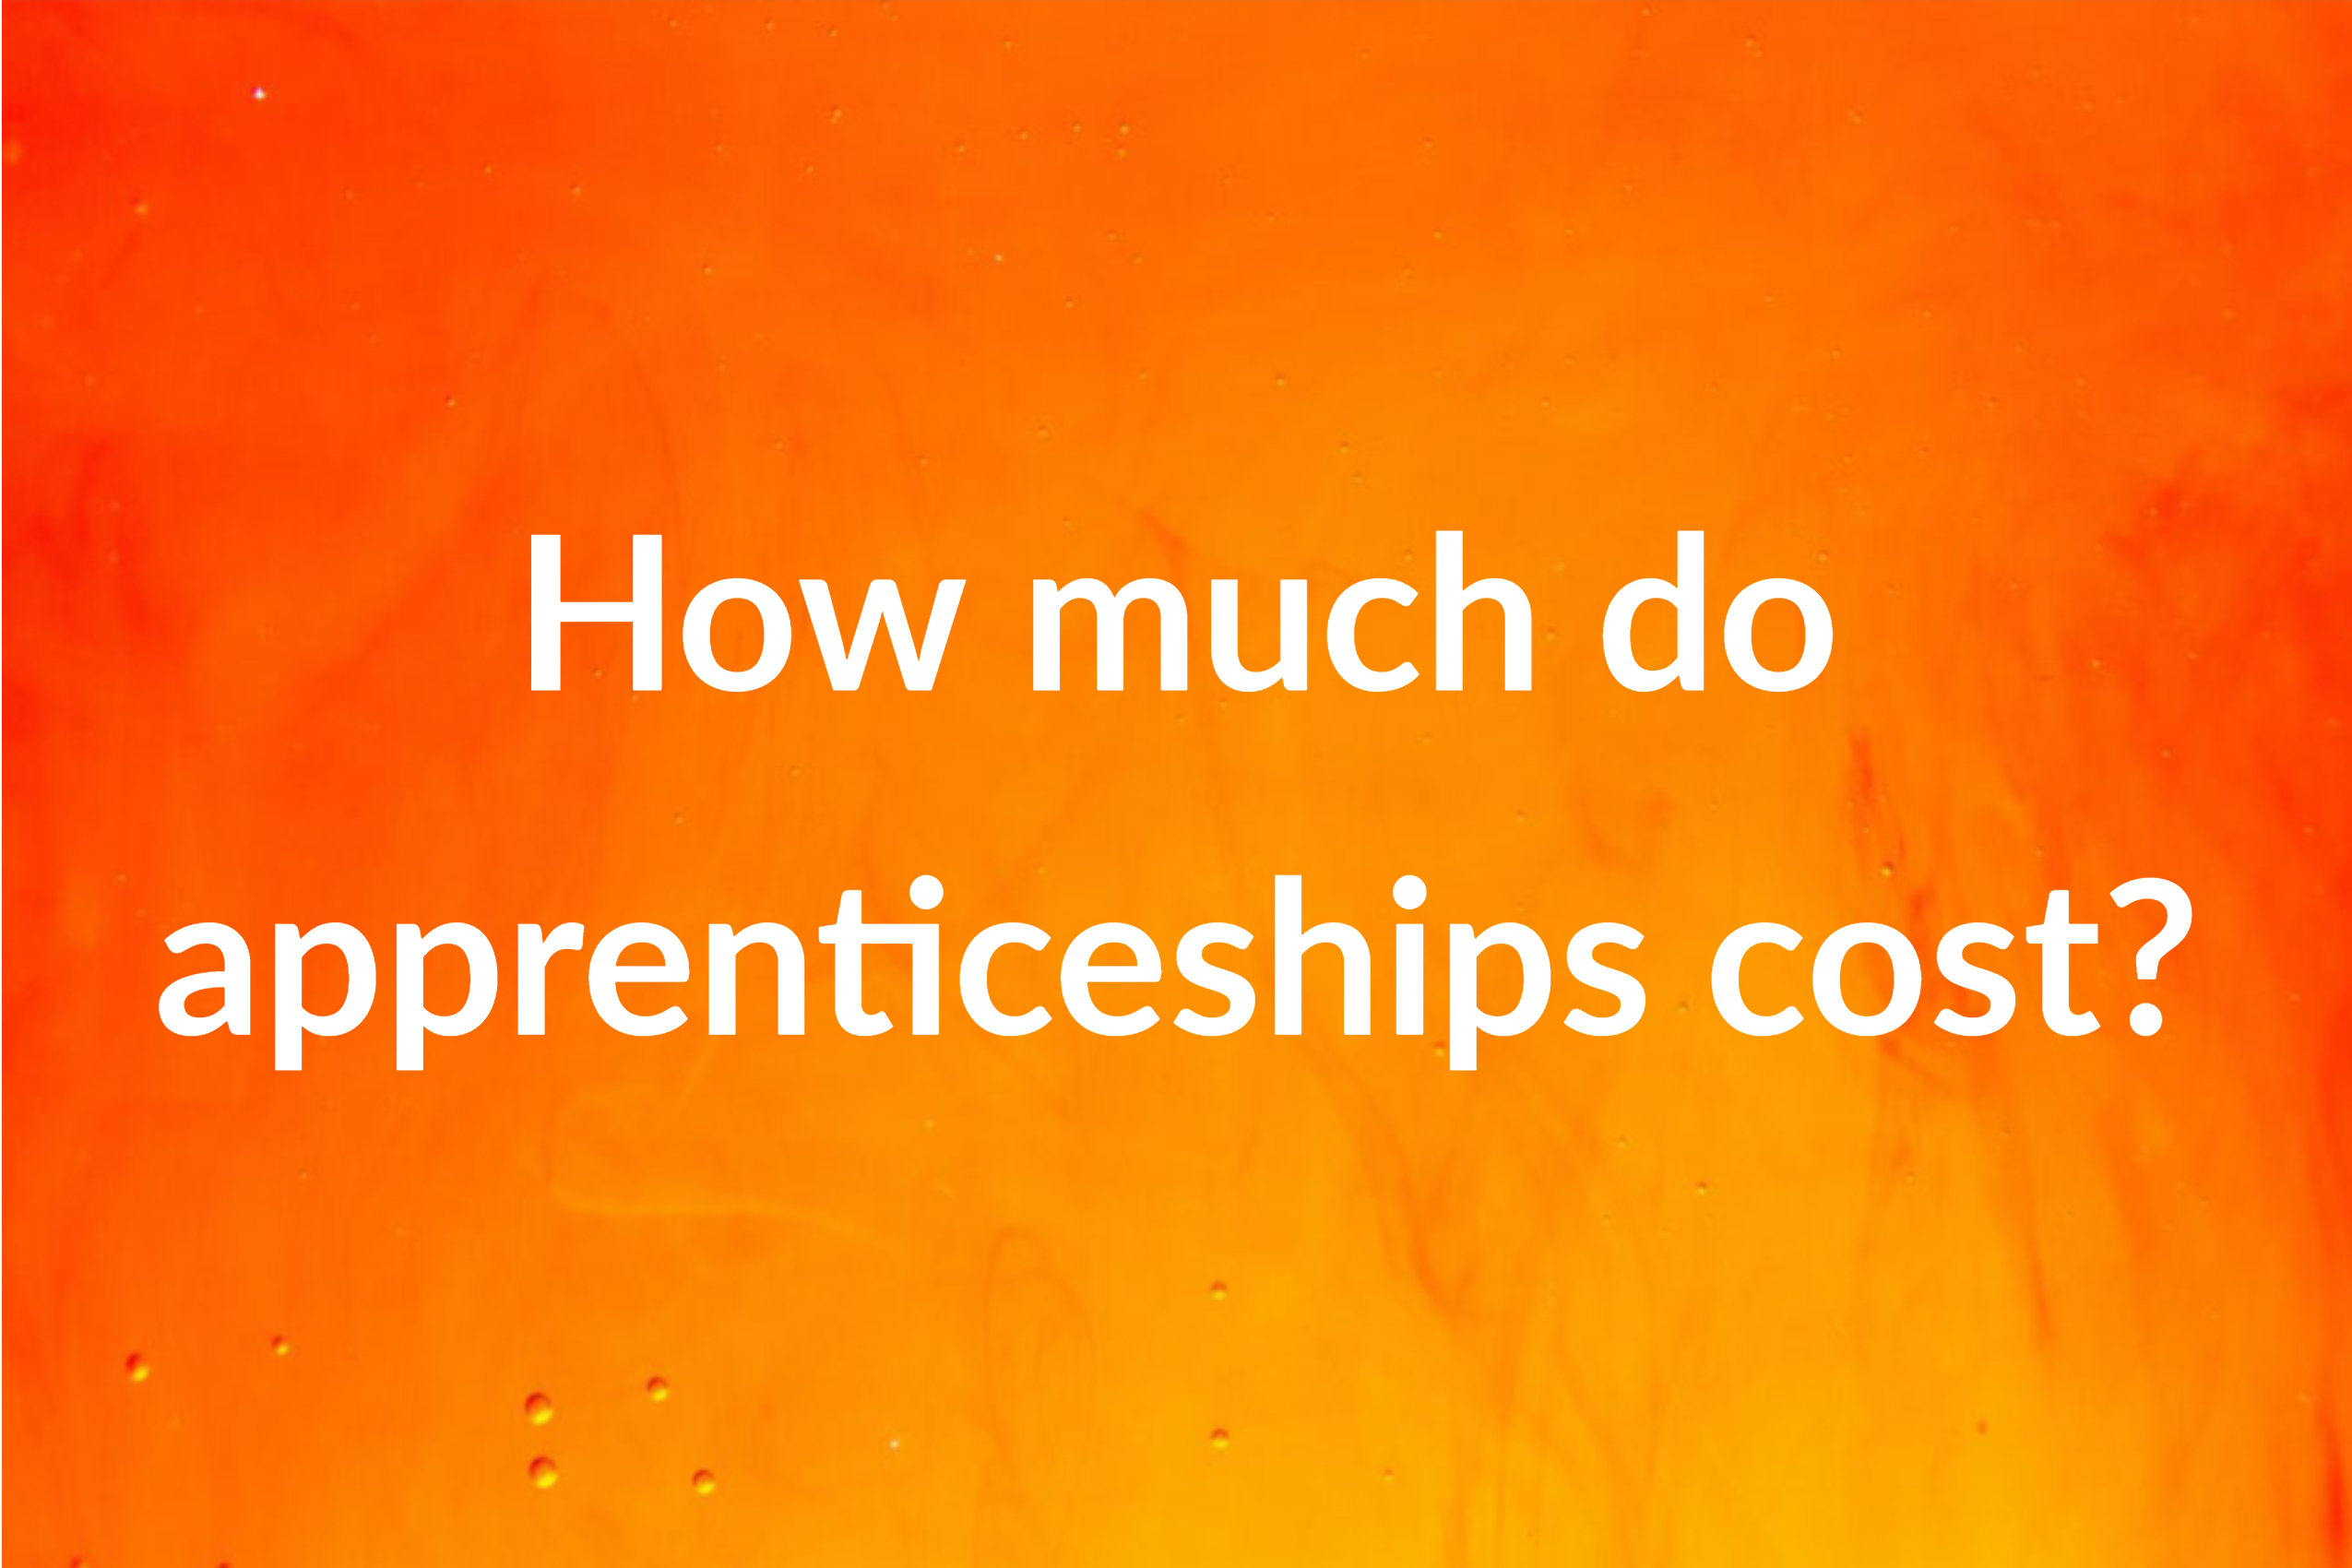 How much do apprenticeships cost